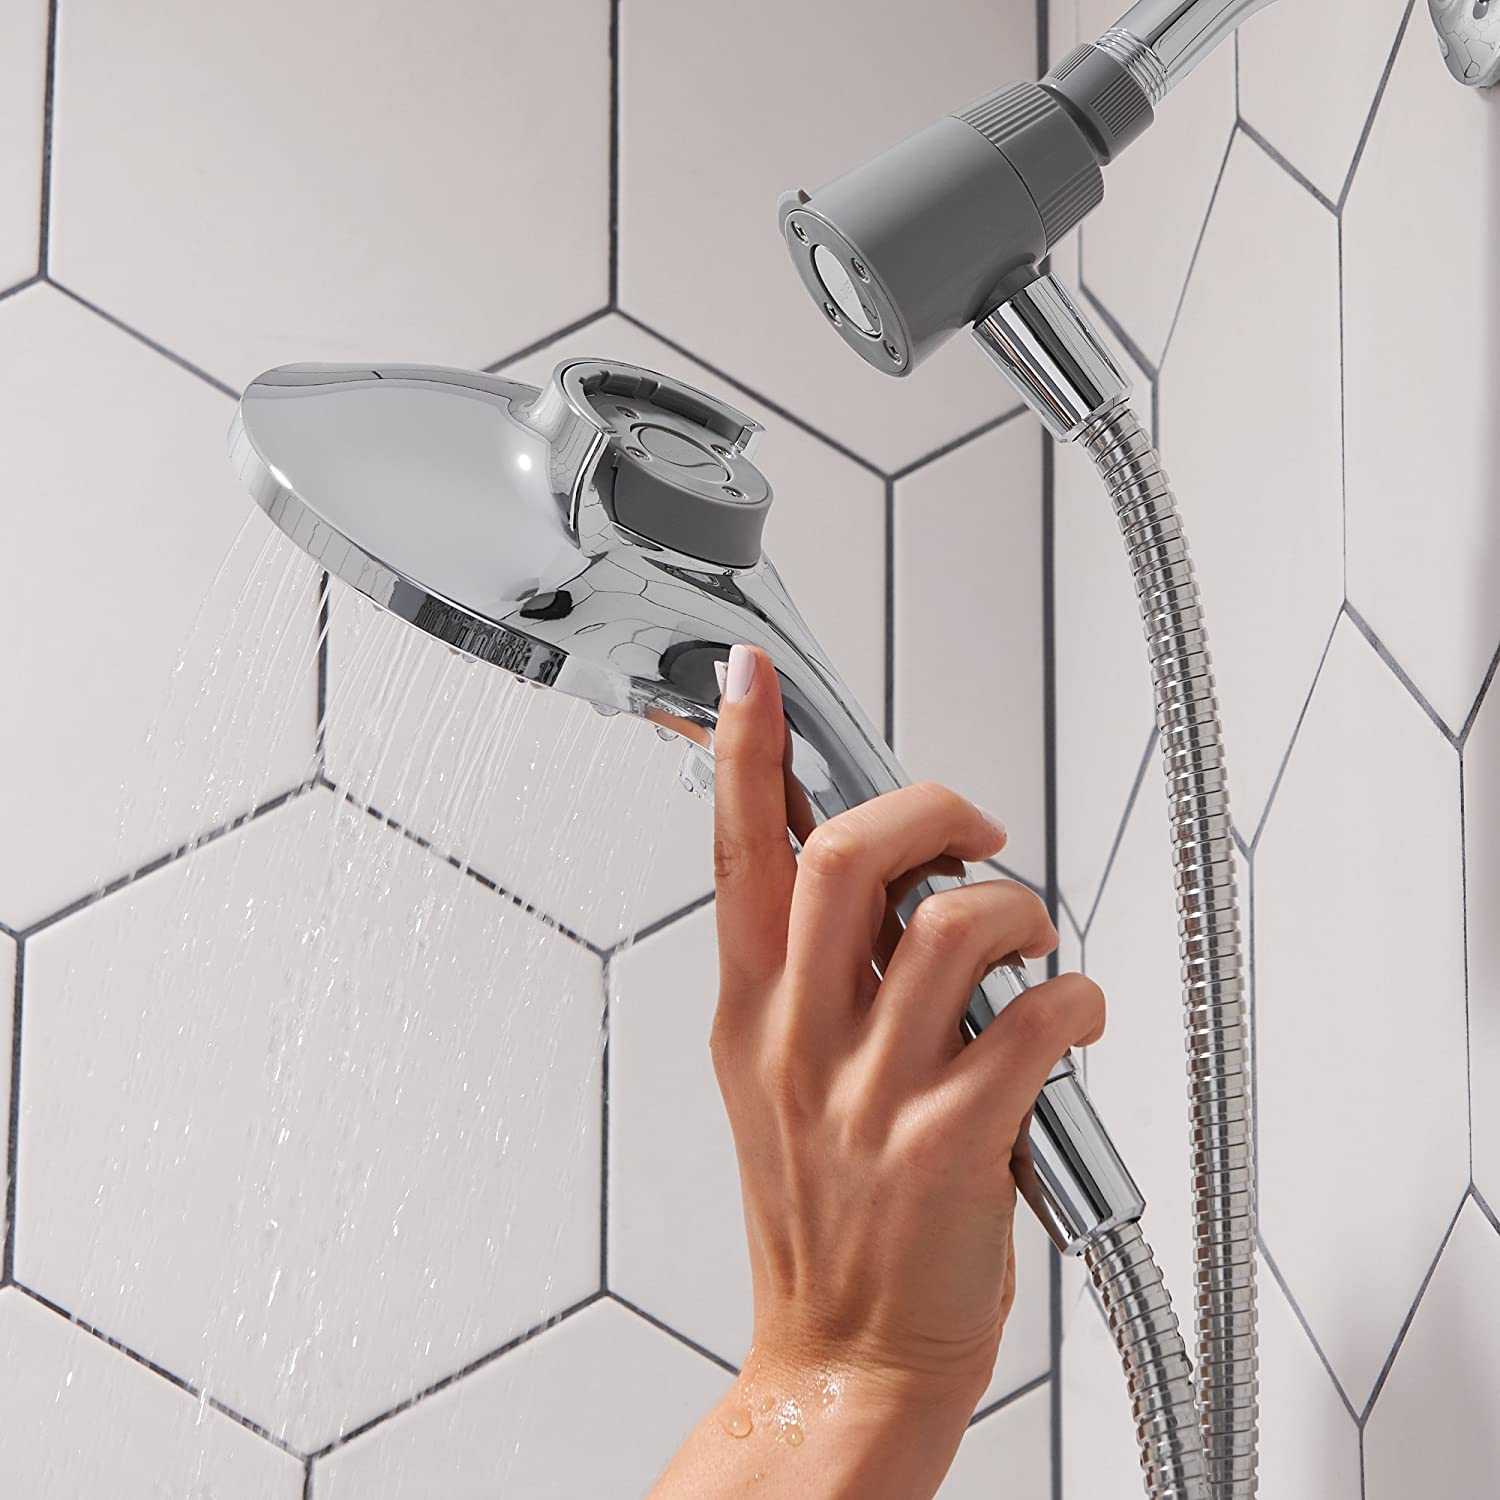 Primary image for Six-Function 5.5-Inch Handheld Showerhead